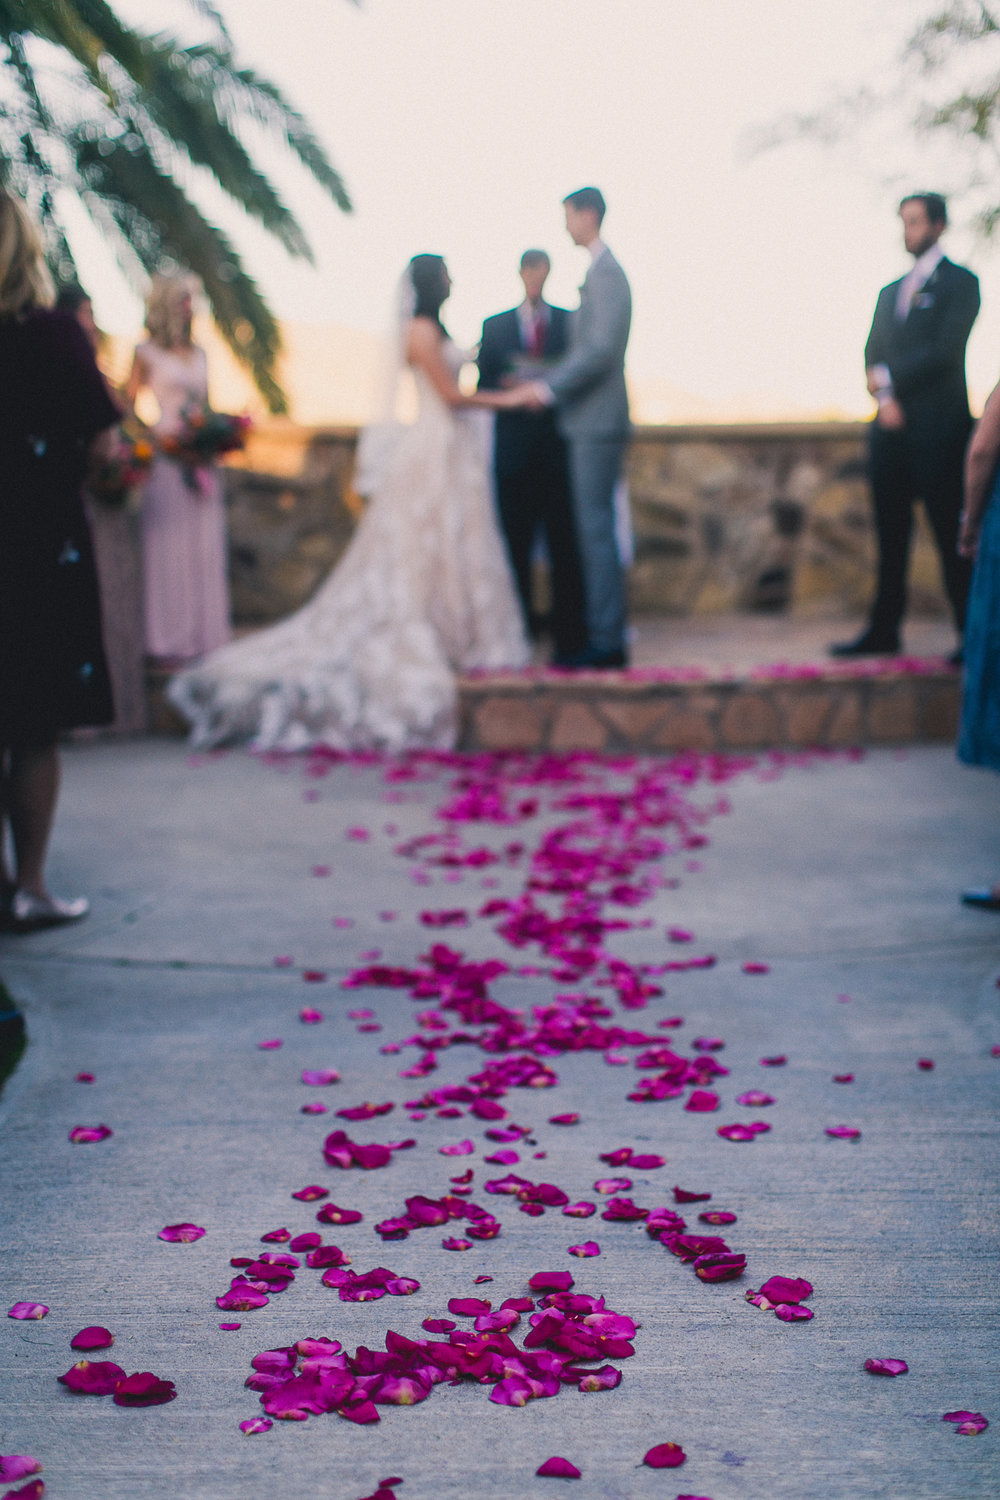 Aisle Petals - We have a handy chart to help you price out your aisle petals. Whether you're looking for a loose scattering or wall to wall petals, we've got you covered. Aisle petals start at $15/ft.